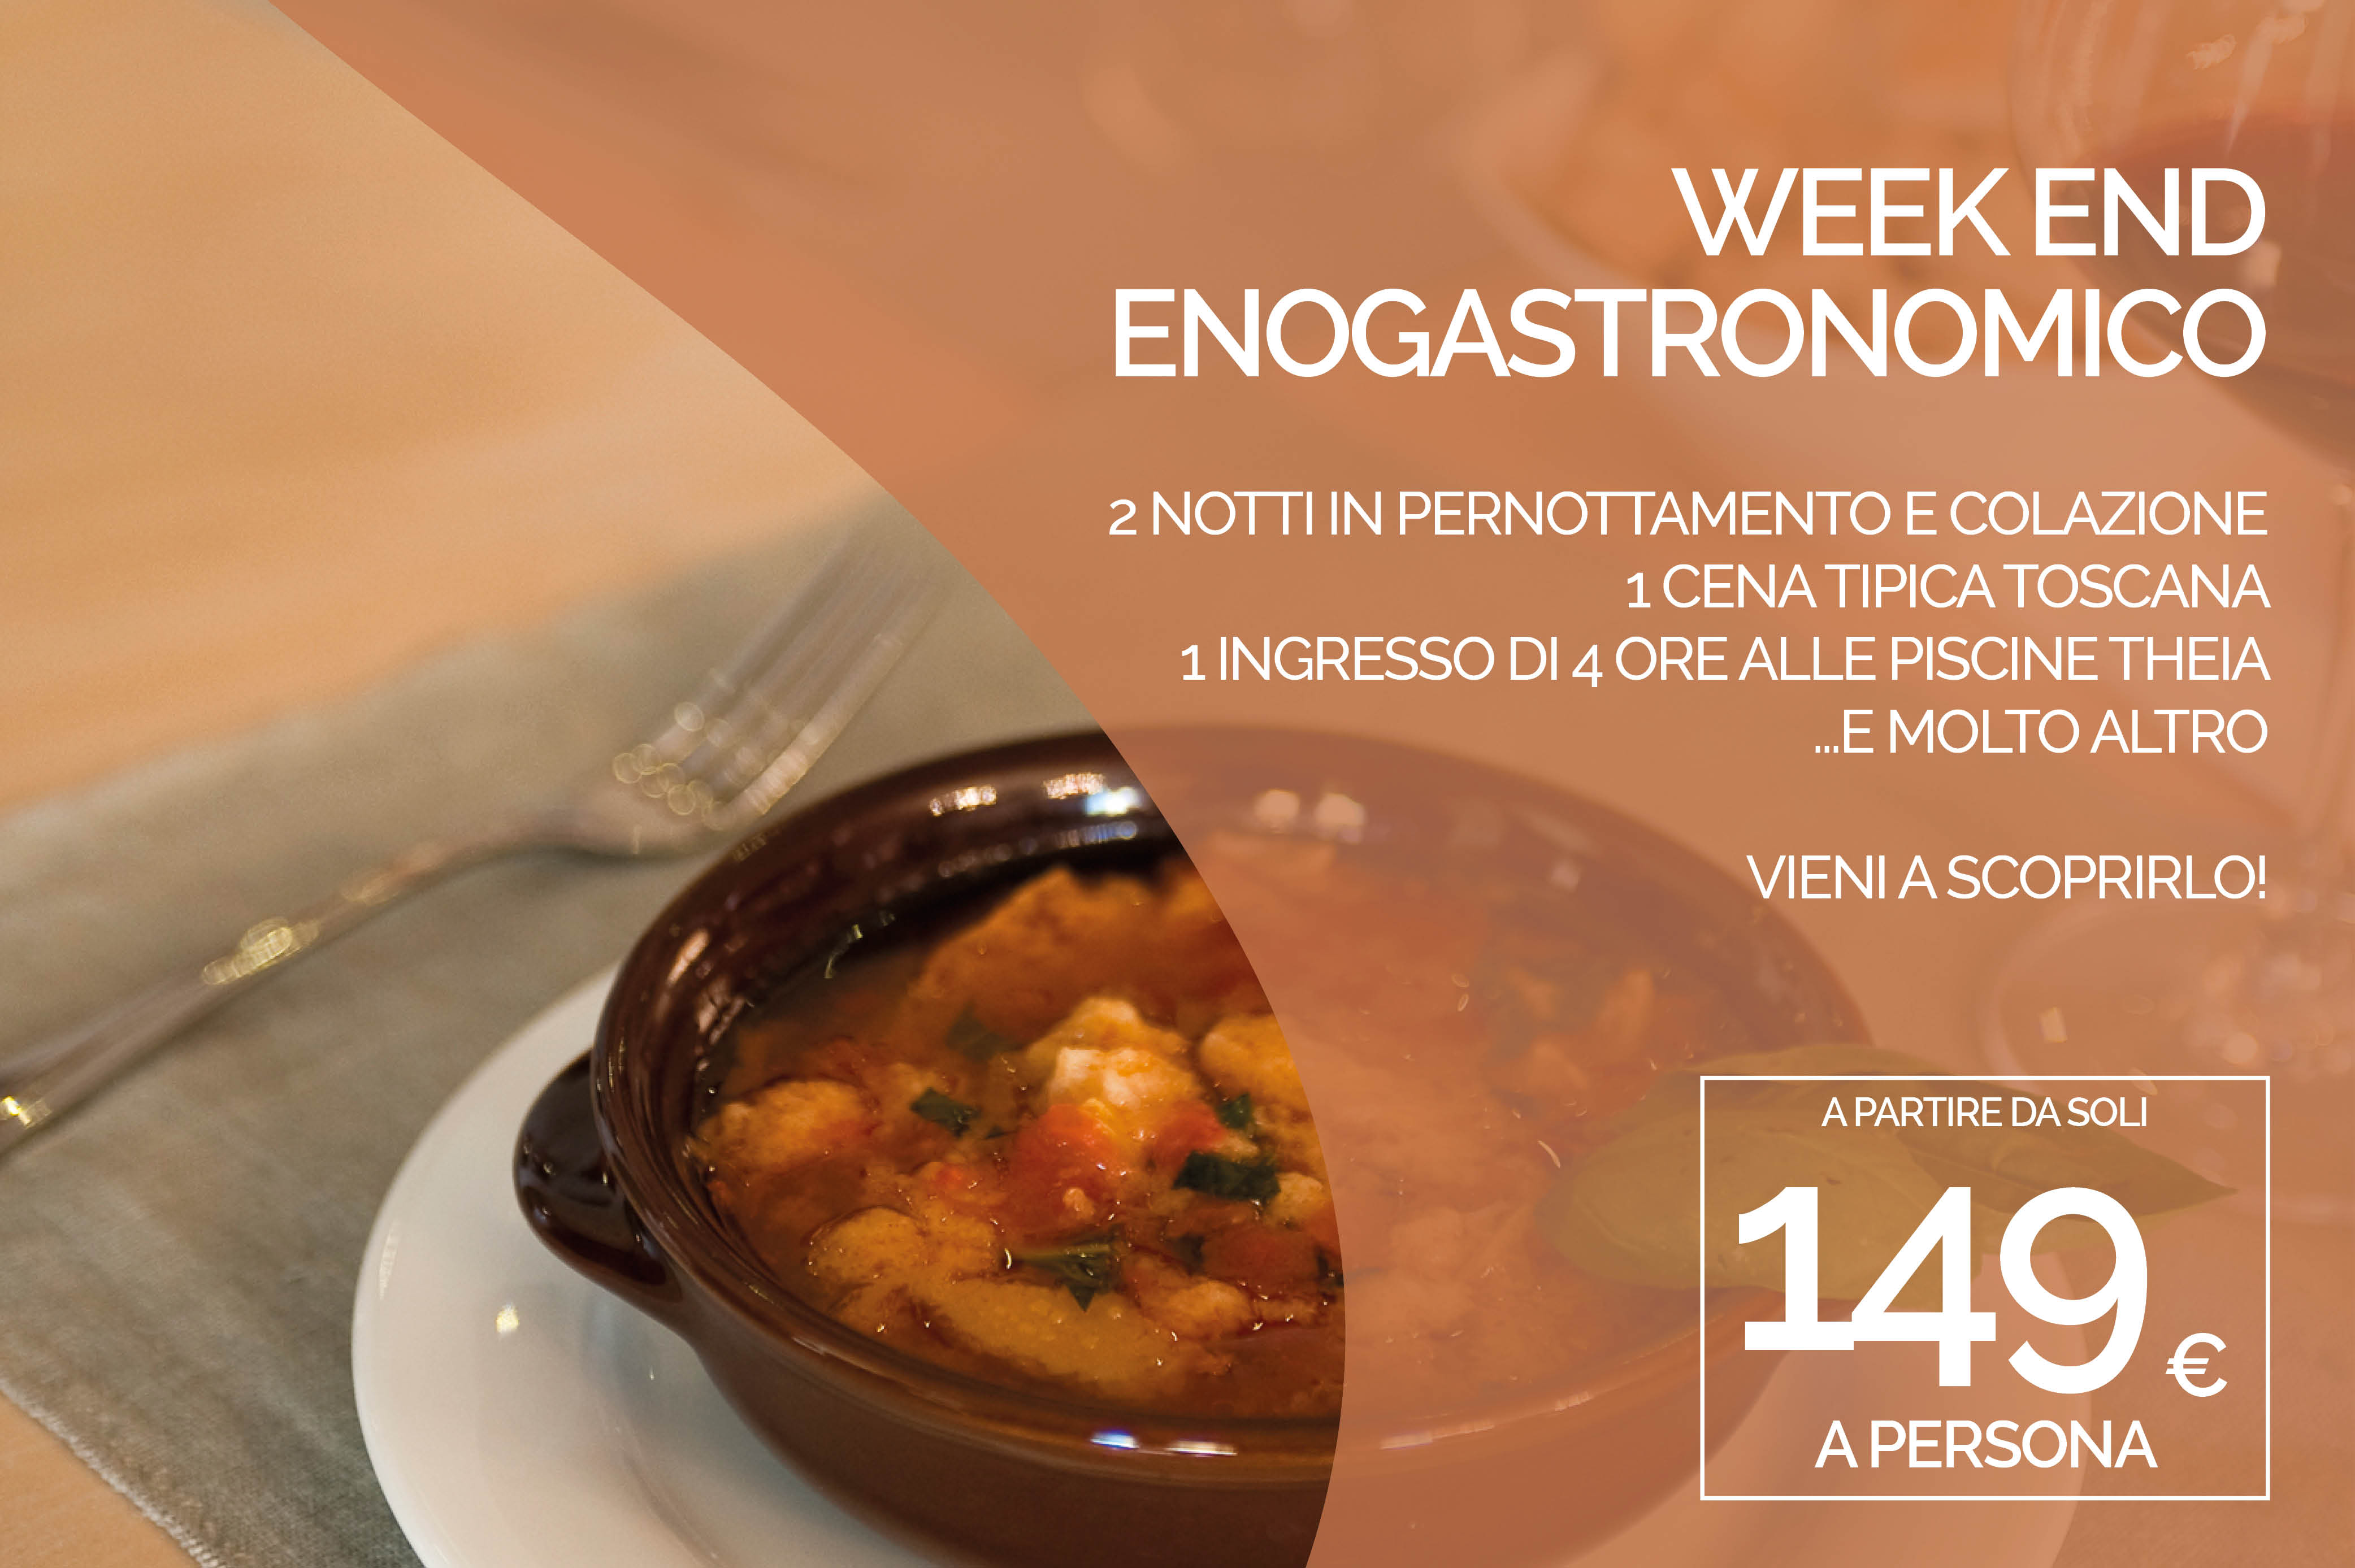 WEEK END ENO GASTRONOMICO 2 NOTTI